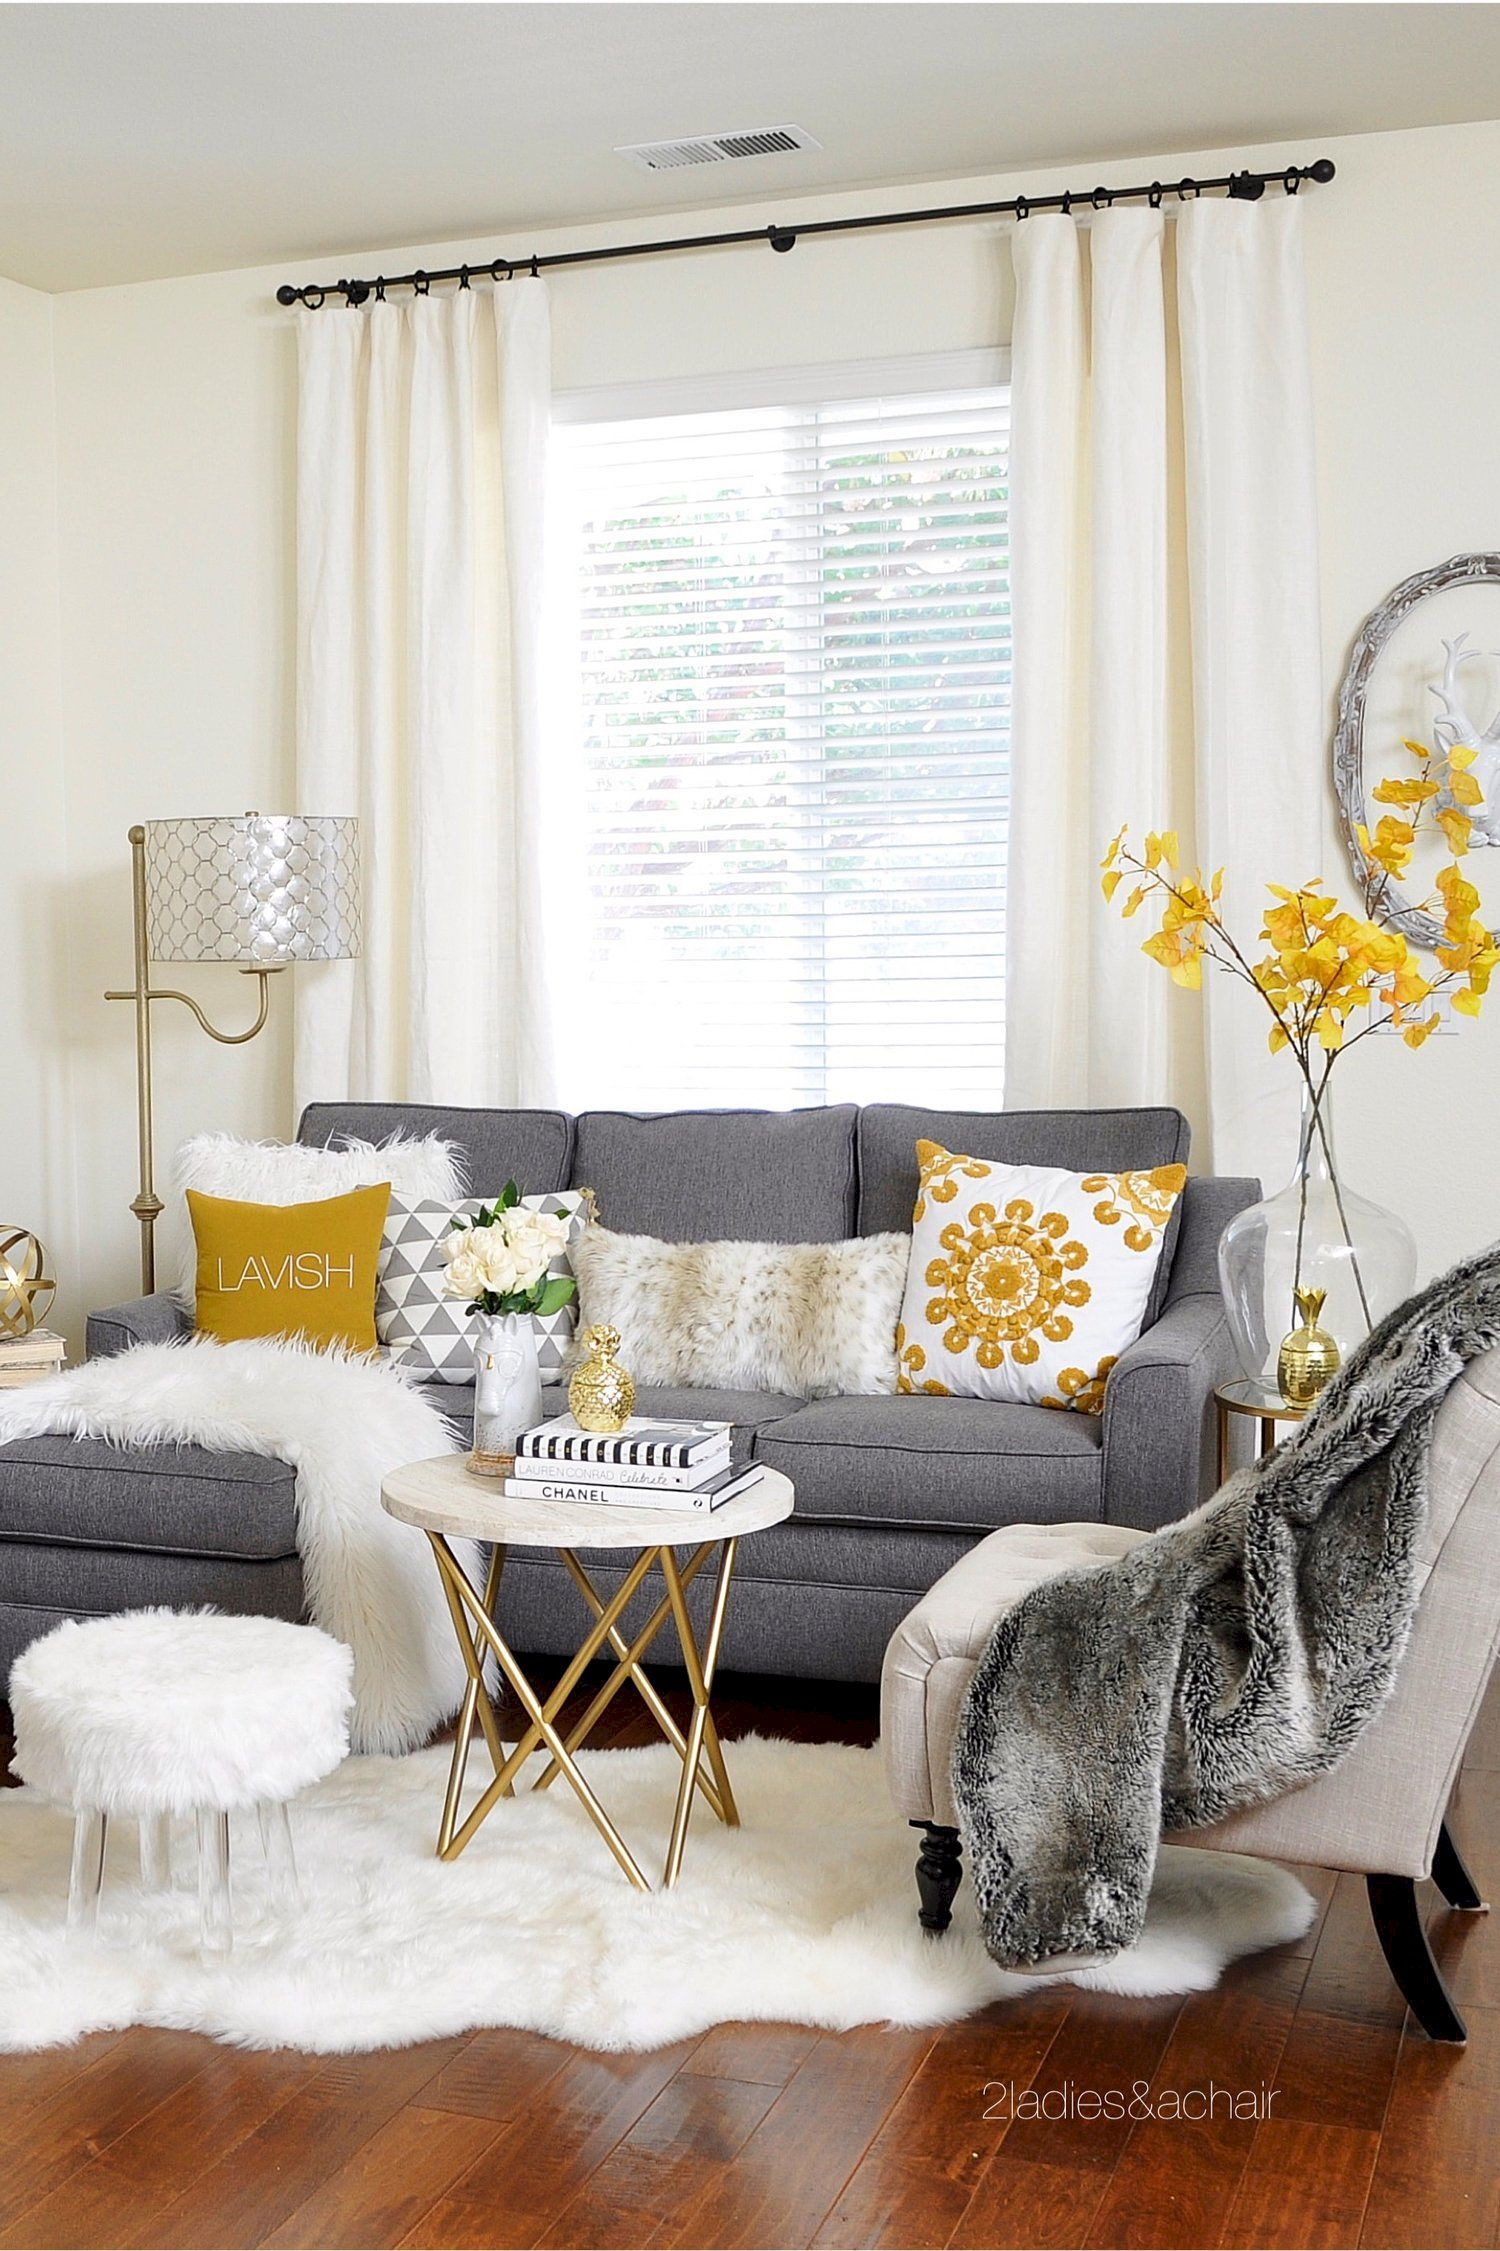 173+ best diy small living room ideas on a budget https://freshoom